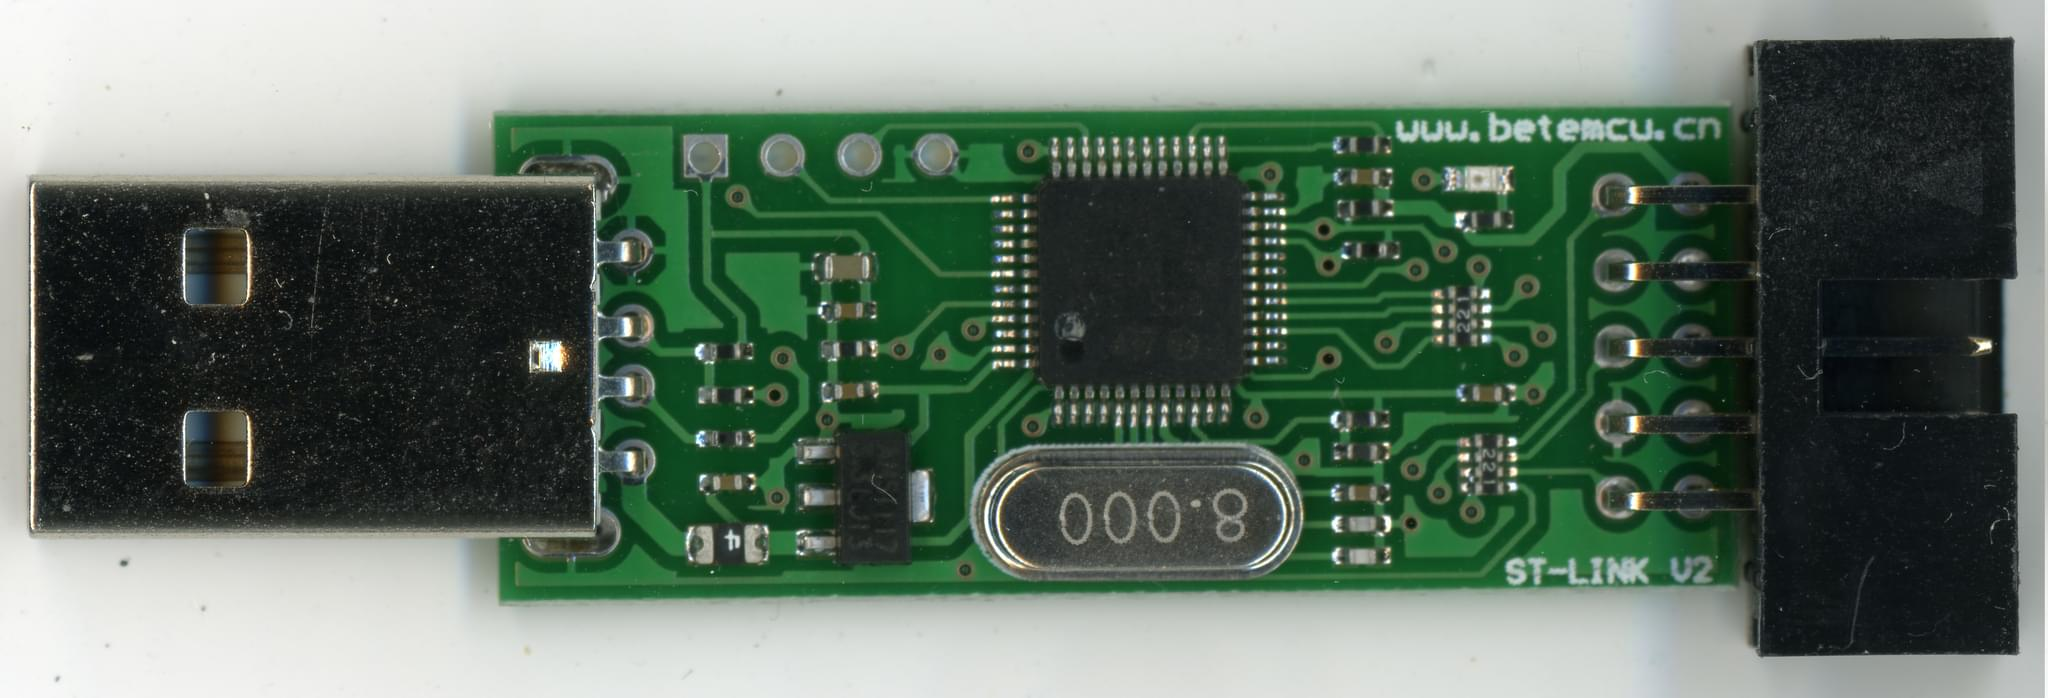 baite v2a board front